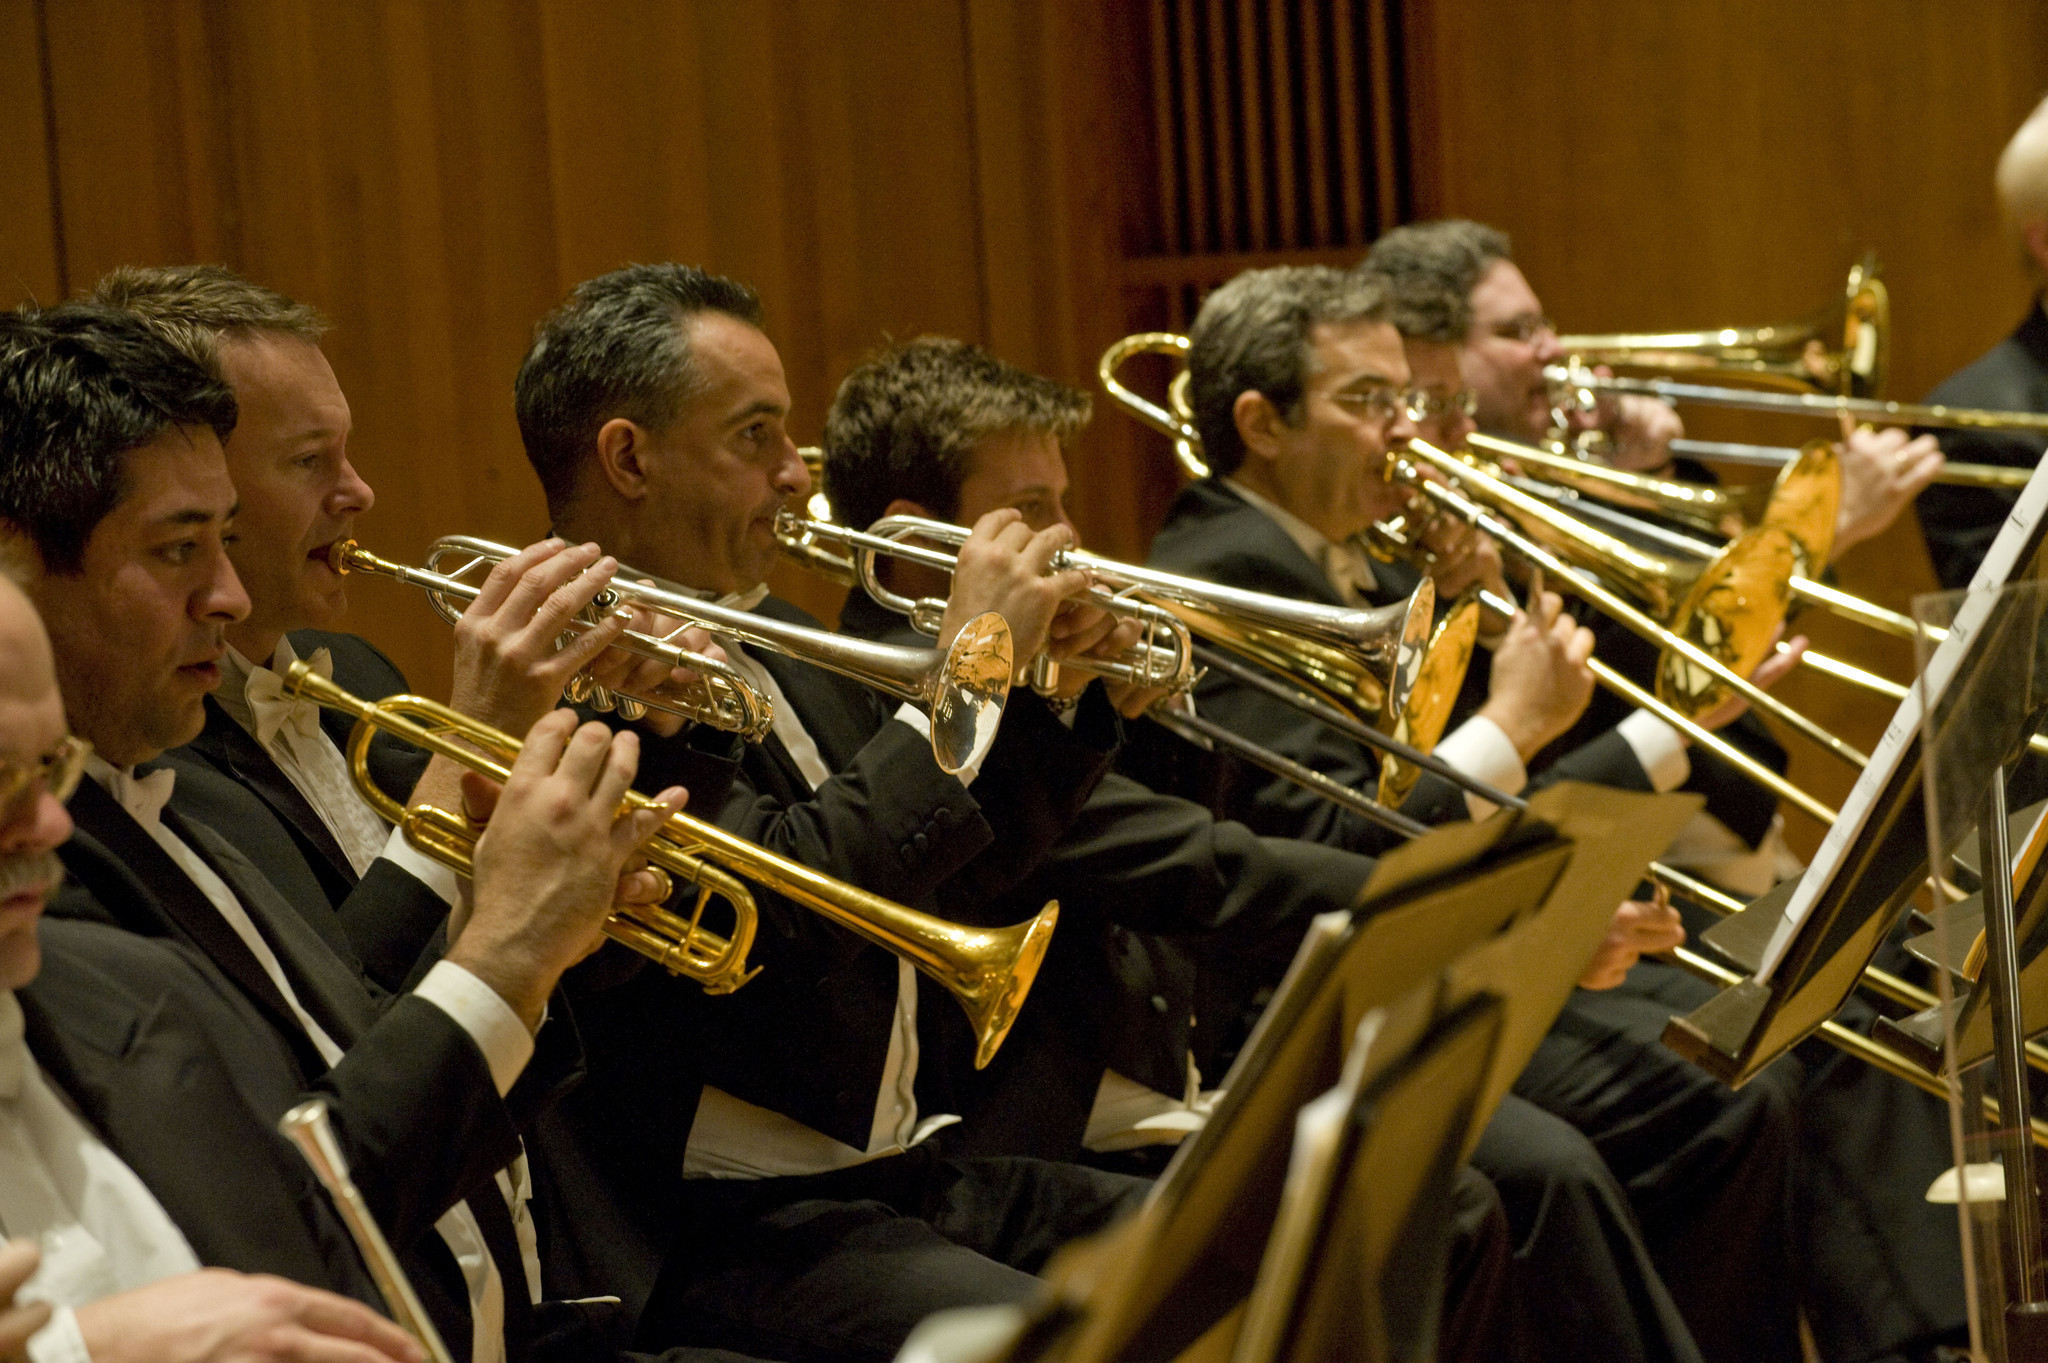 Adult musicians from around the country join the Baltimore Symphony Orchestra for a three-day Music Festival during Artscape. Location: Joseph Meyerhoff Symphony Hall, Cathedral St Performing on the Meyerhoff stage alongside their BSO mentors is the musical opportunity of a lifetime.